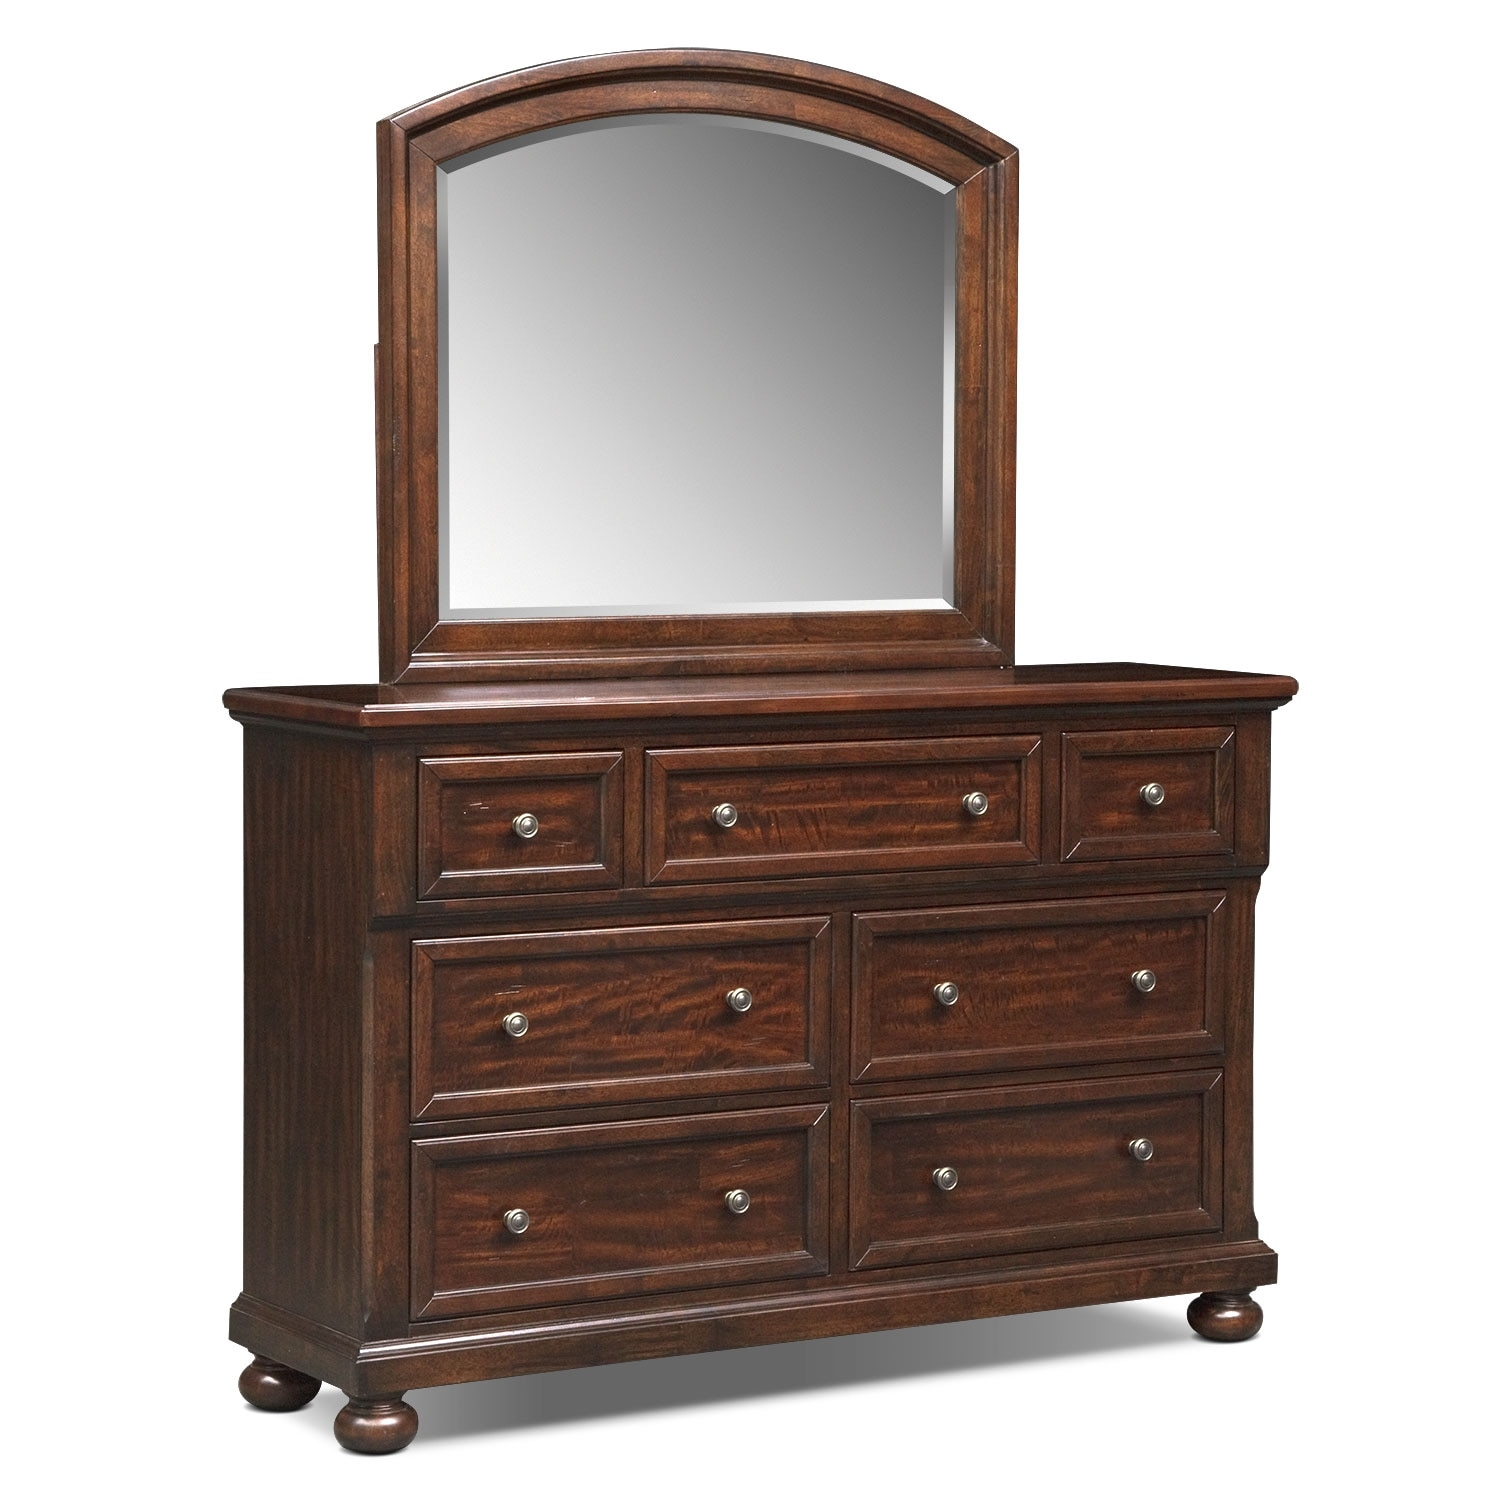 Bedroom Furniture - Hanover Panel Dresser & Mirror